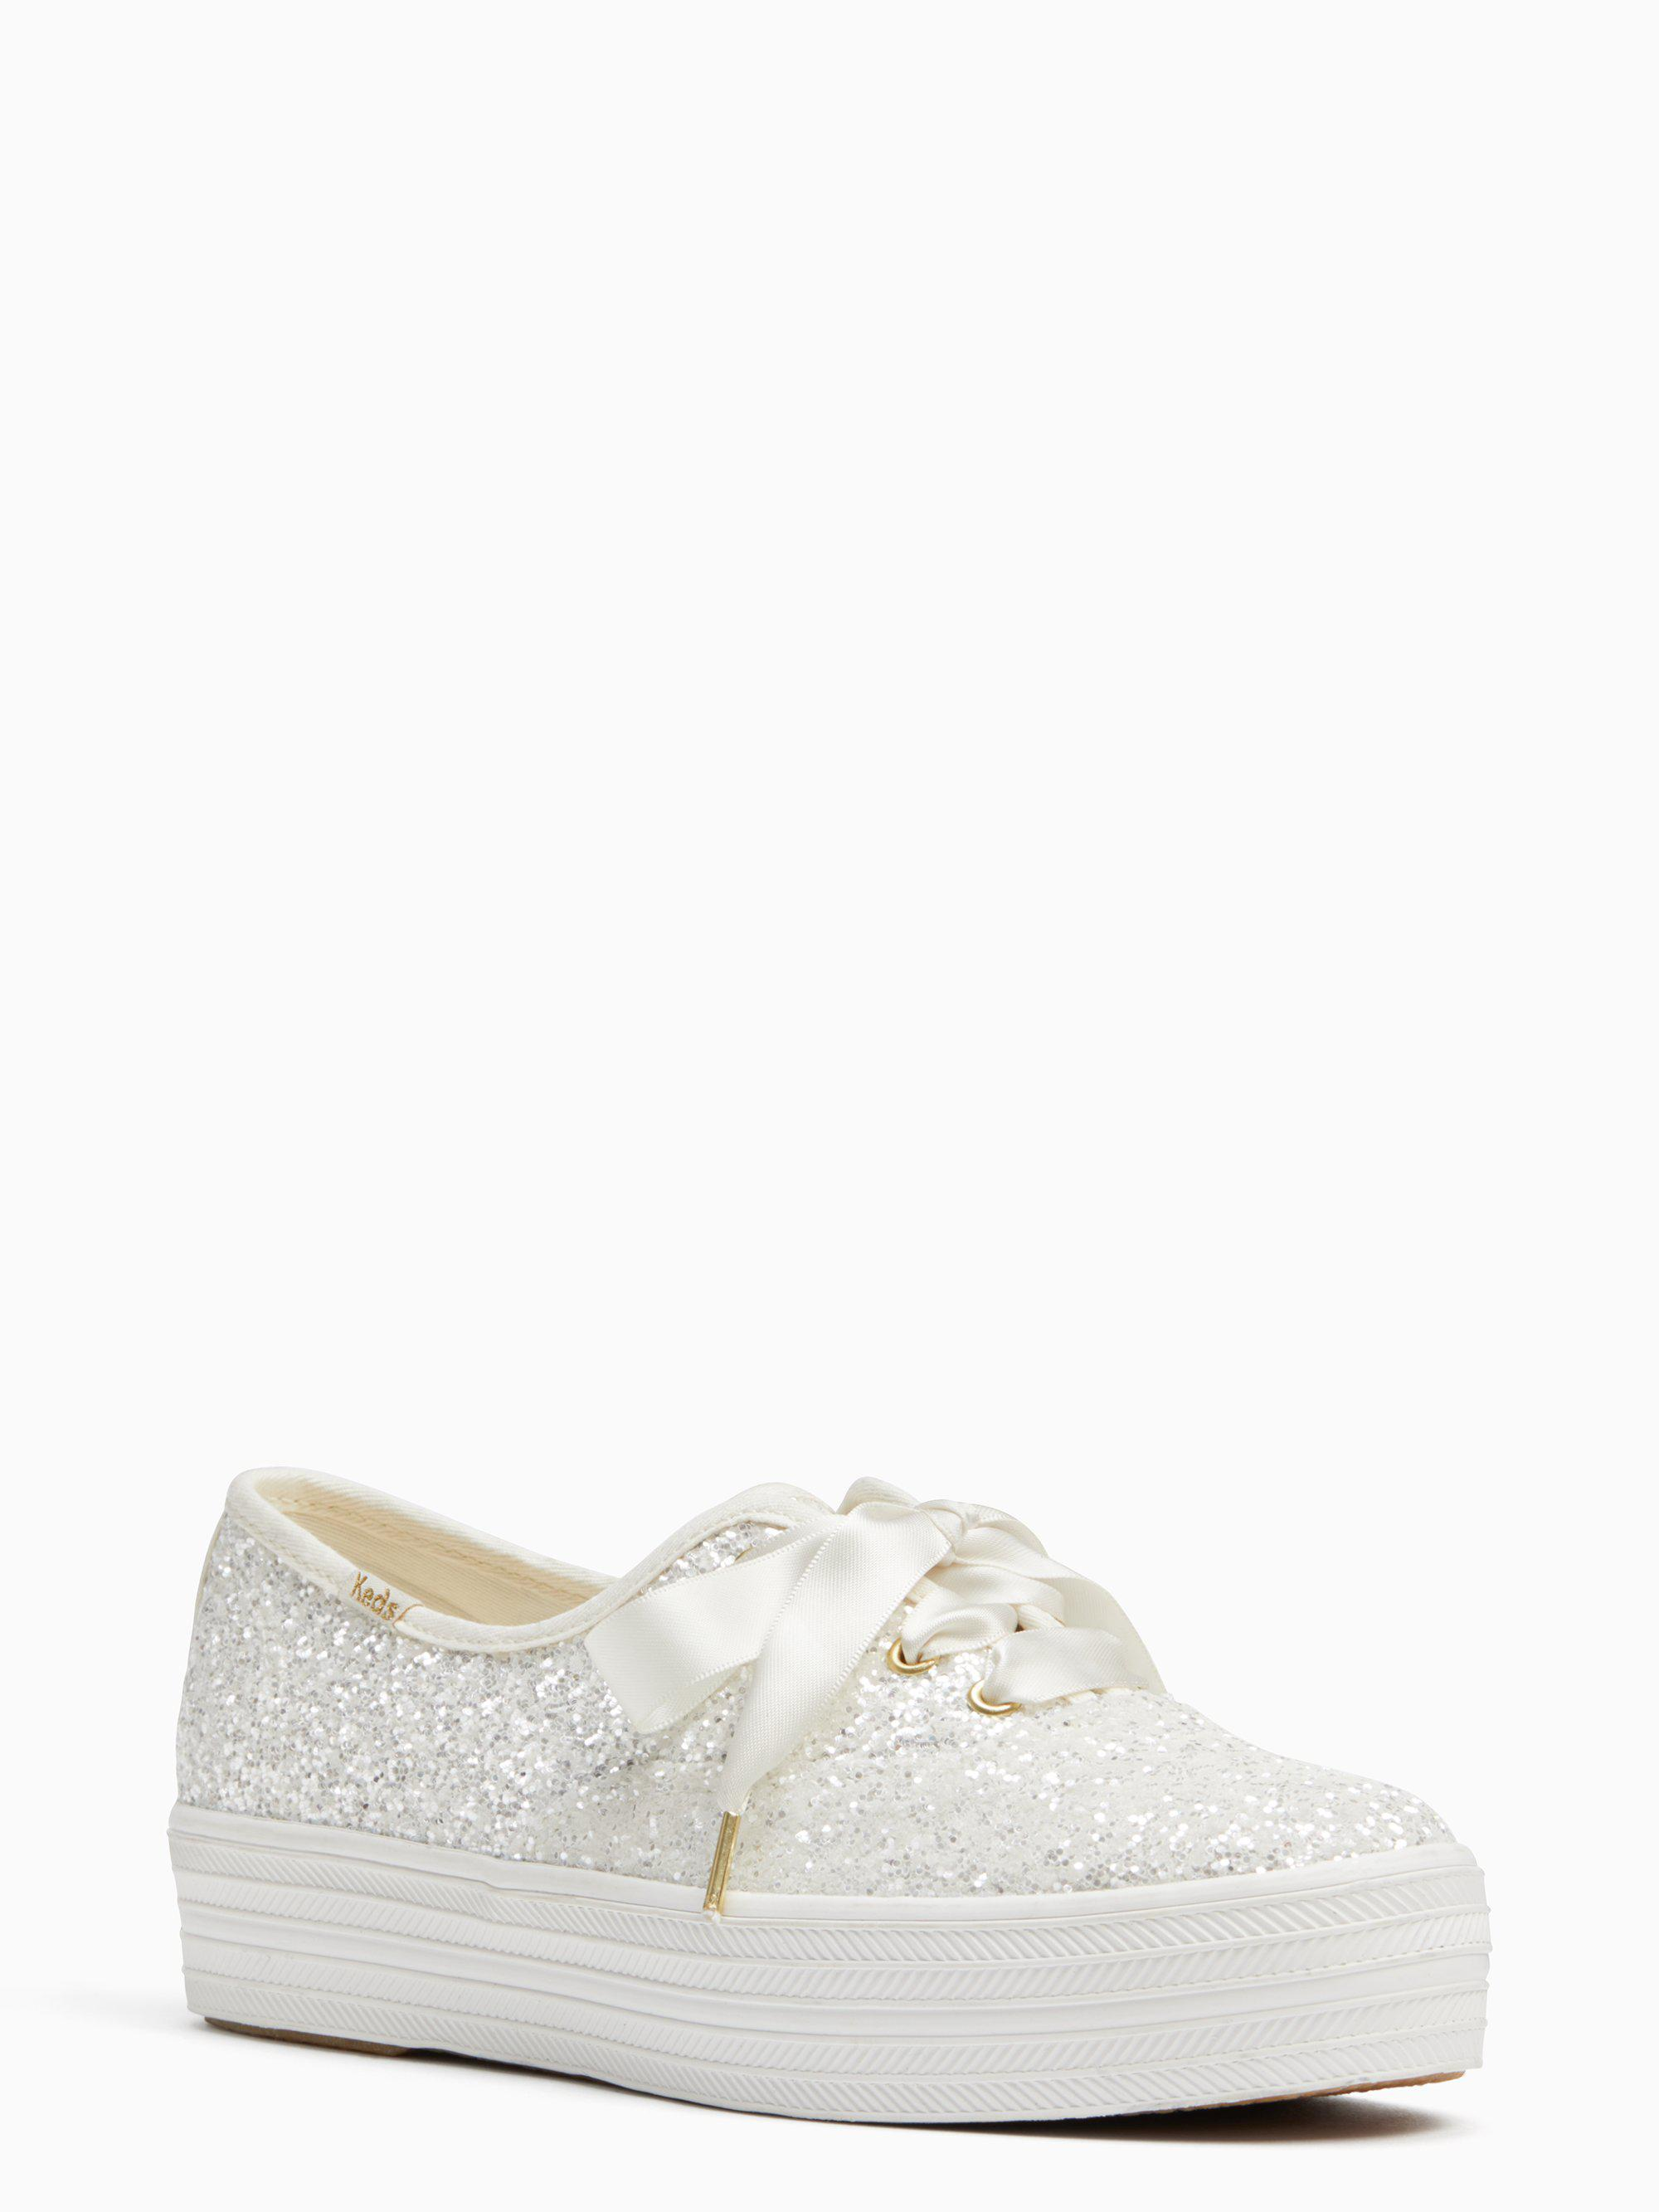 bcffff4bcde Lyst - Kate Spade Keds X New York Triple Glitter Sneakers in Natural